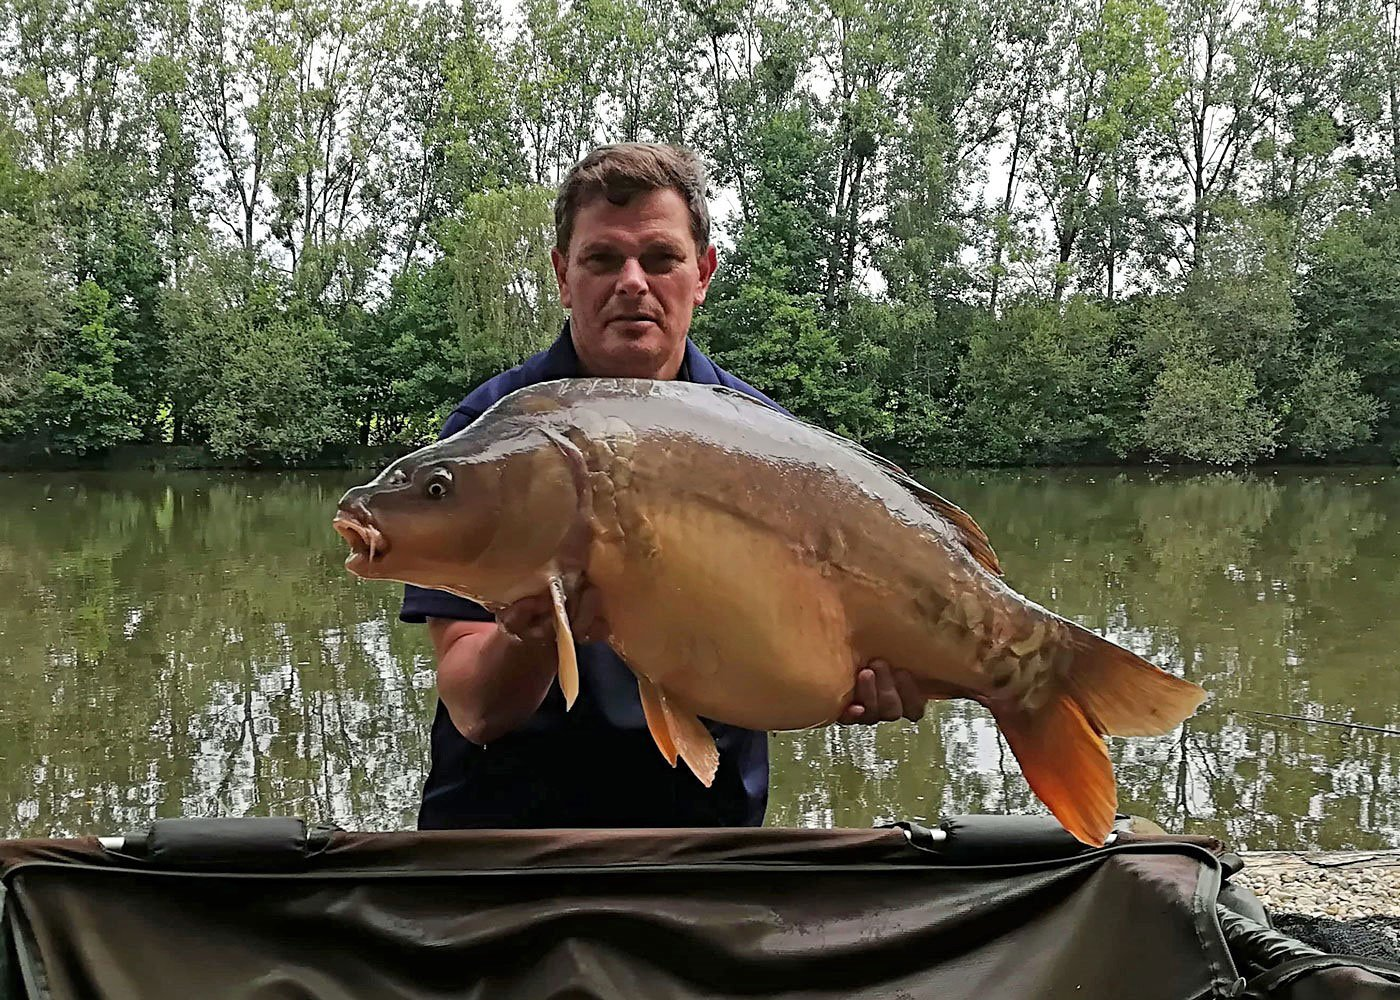 Mark with Janus at 34lbs